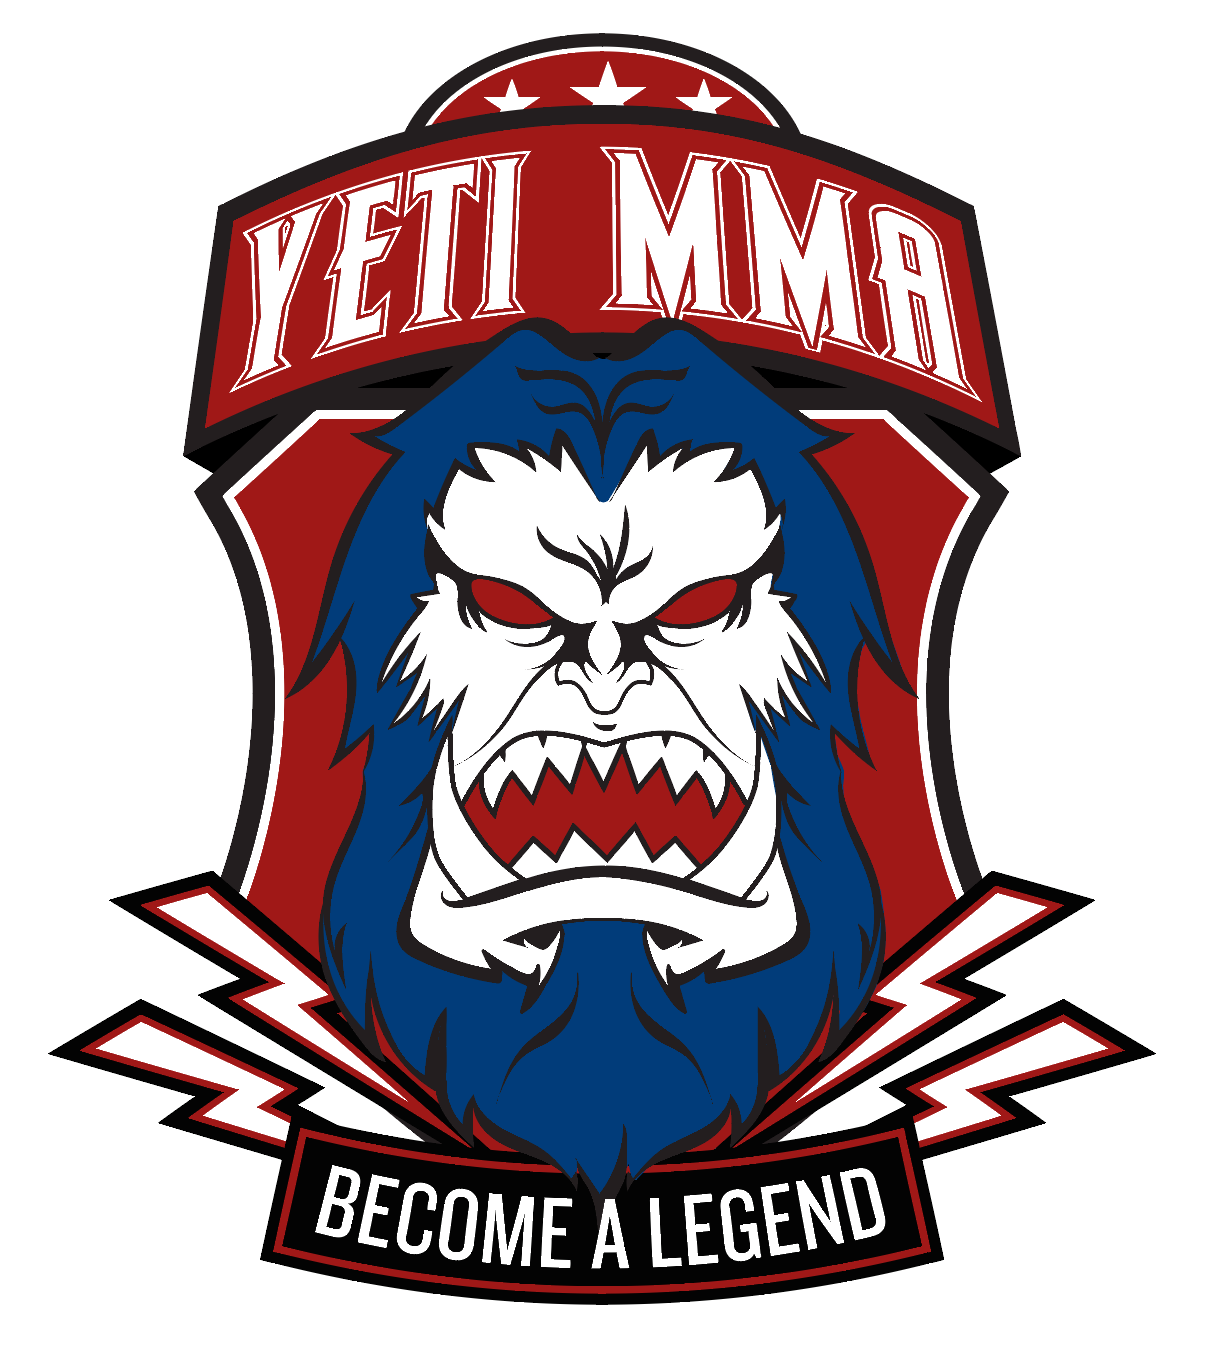 Greater Westfield Area Chamber of Commerce Self Defense Workshop At Yeti MMA